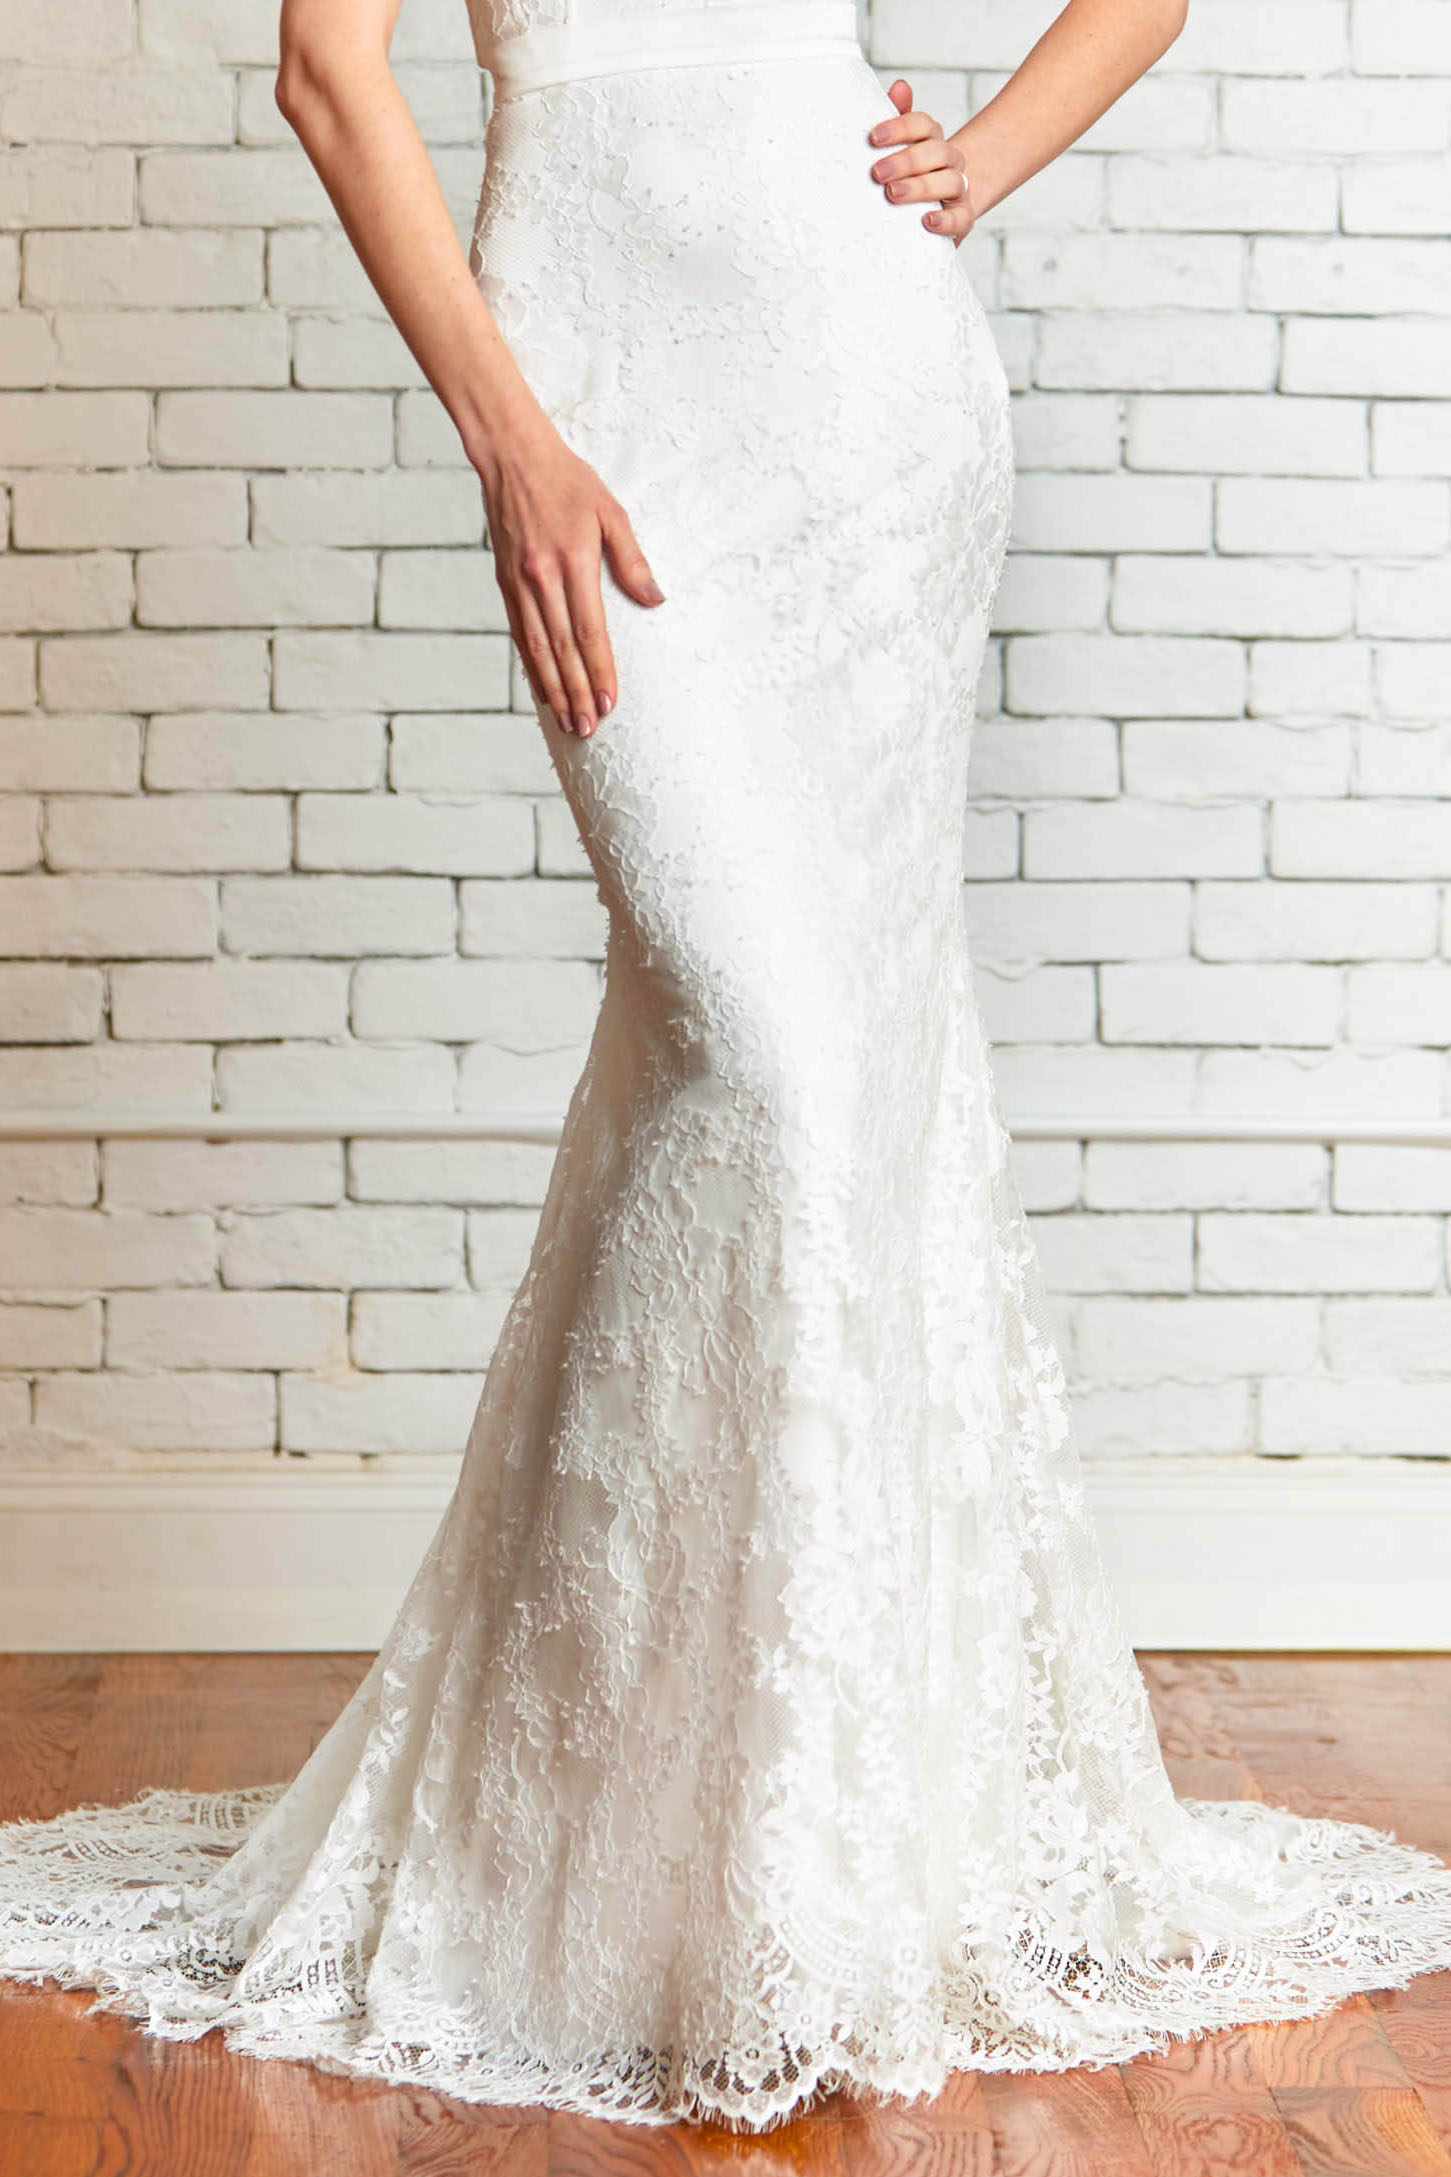 Hope-front_Lace_Mermaid_Fitted_skirt_Modern.jpg